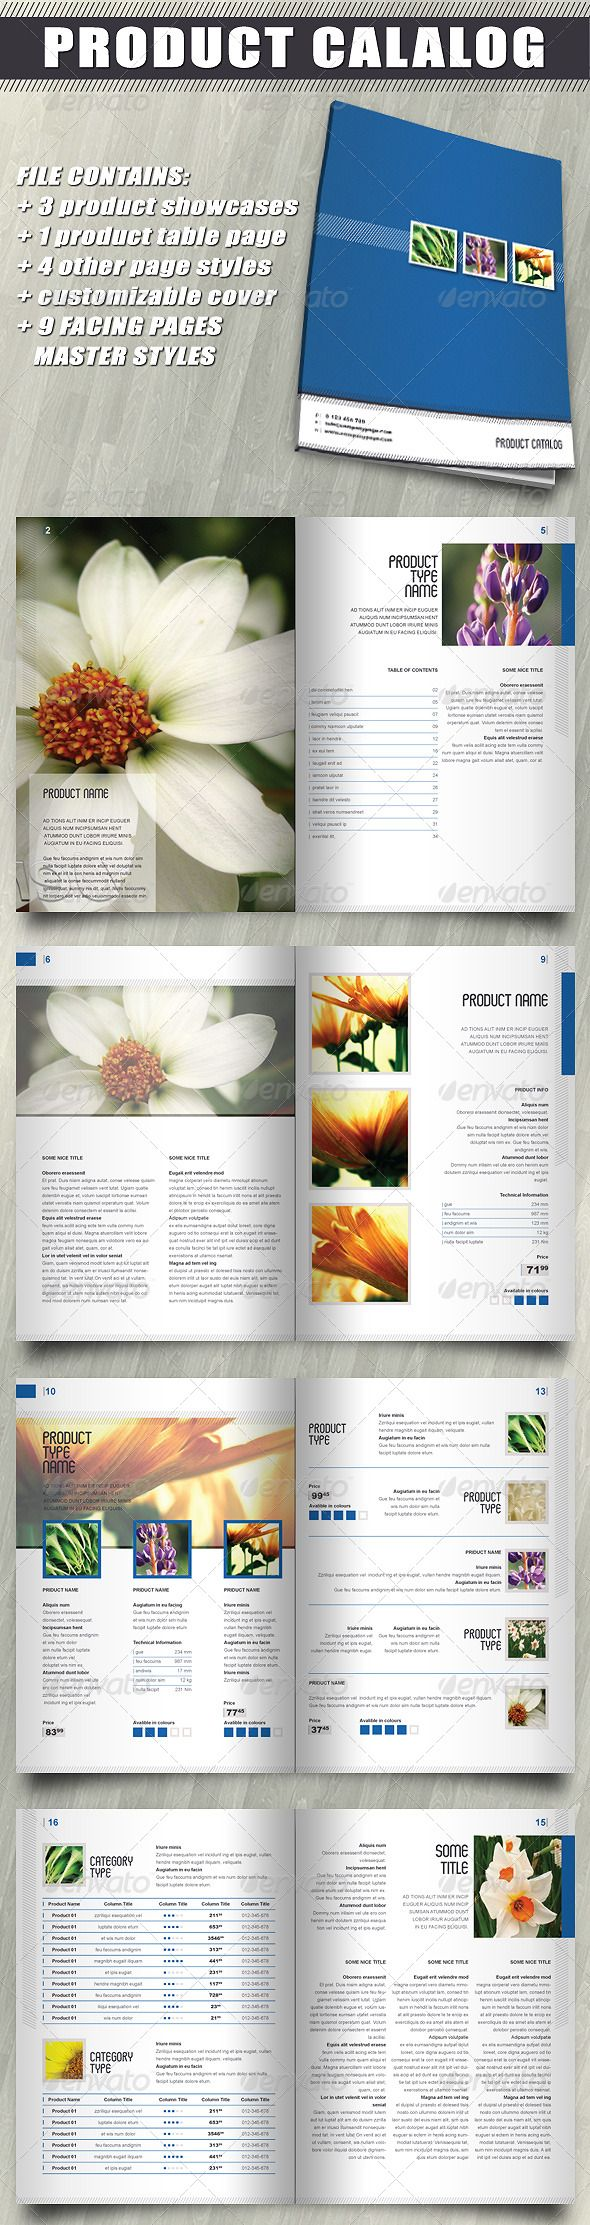 Flexible Product Catalog_Purchase : http://graphicriver.net/item/flexible-product-catalog/153218?ref=ThemeTruly